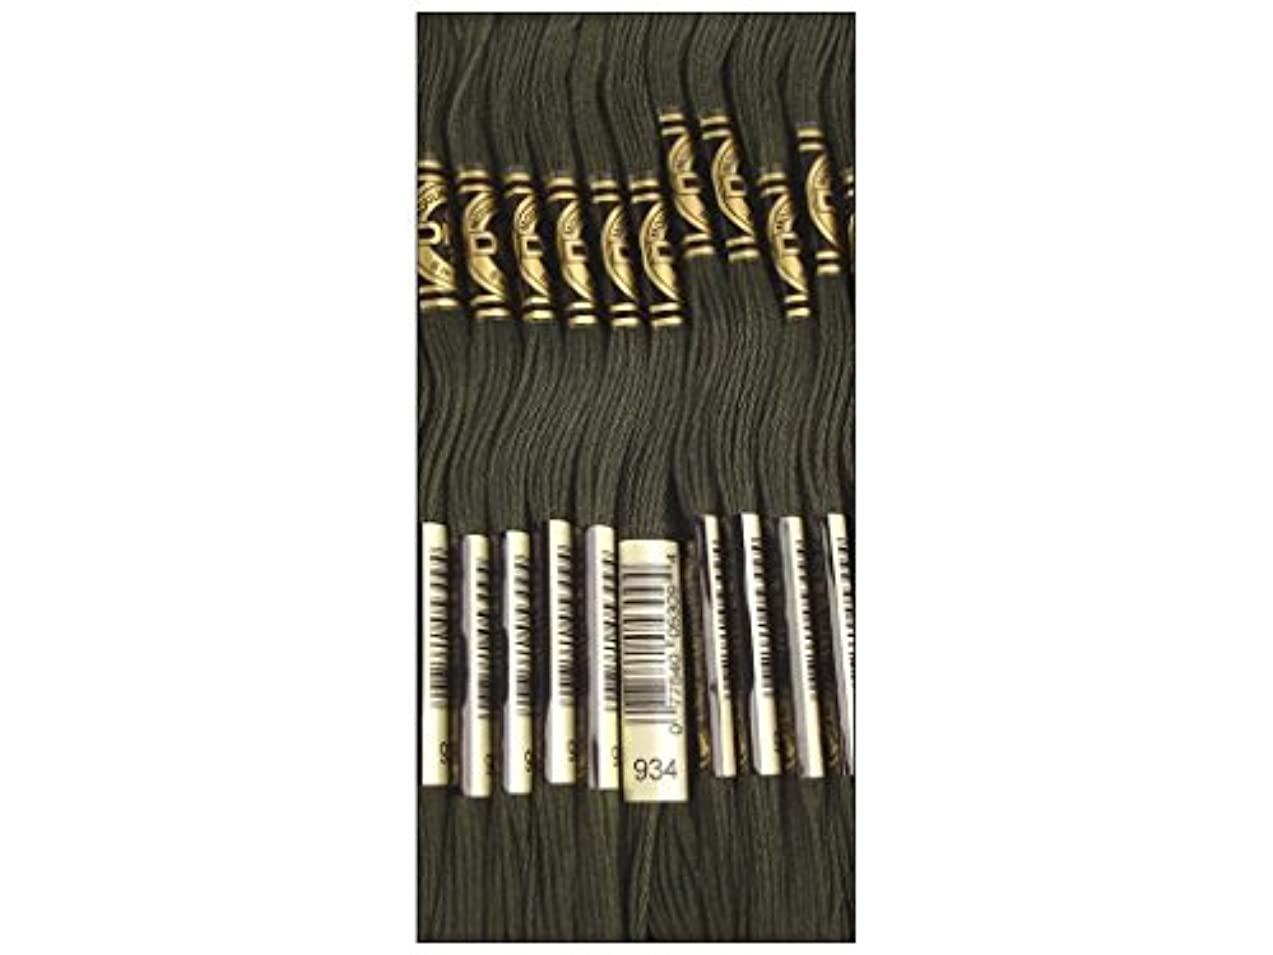 Bulk Buy: DMC Thread Six Strand Embroidery Cotton 8.7 Yards Black Avocado Green 117-934 (12-Pack) eixxnmuy976